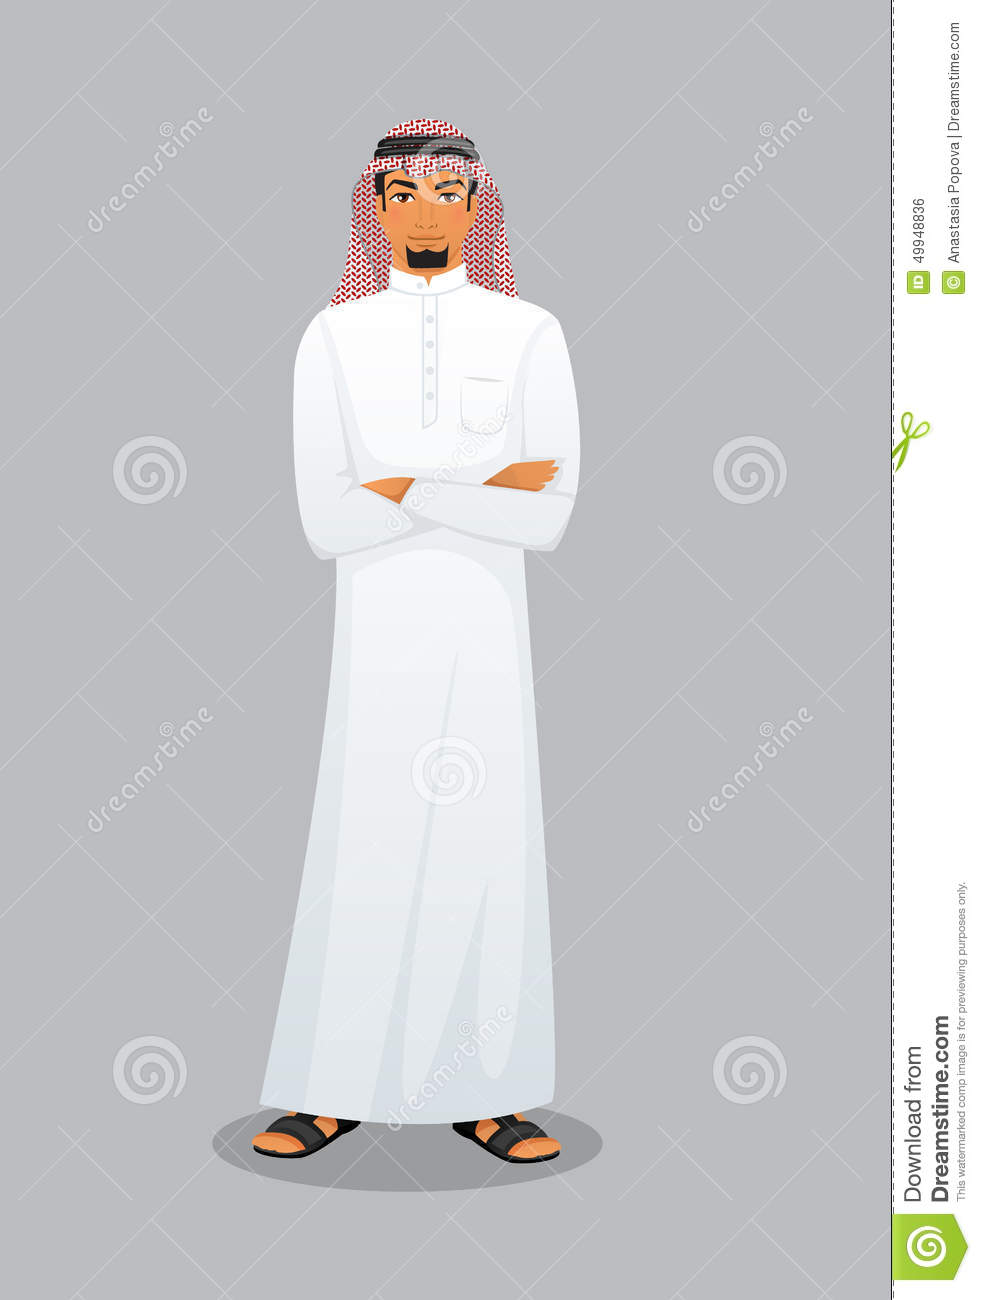 arabic man character image stock vector image 49948836 bedtime clipart png bedtime clipart png